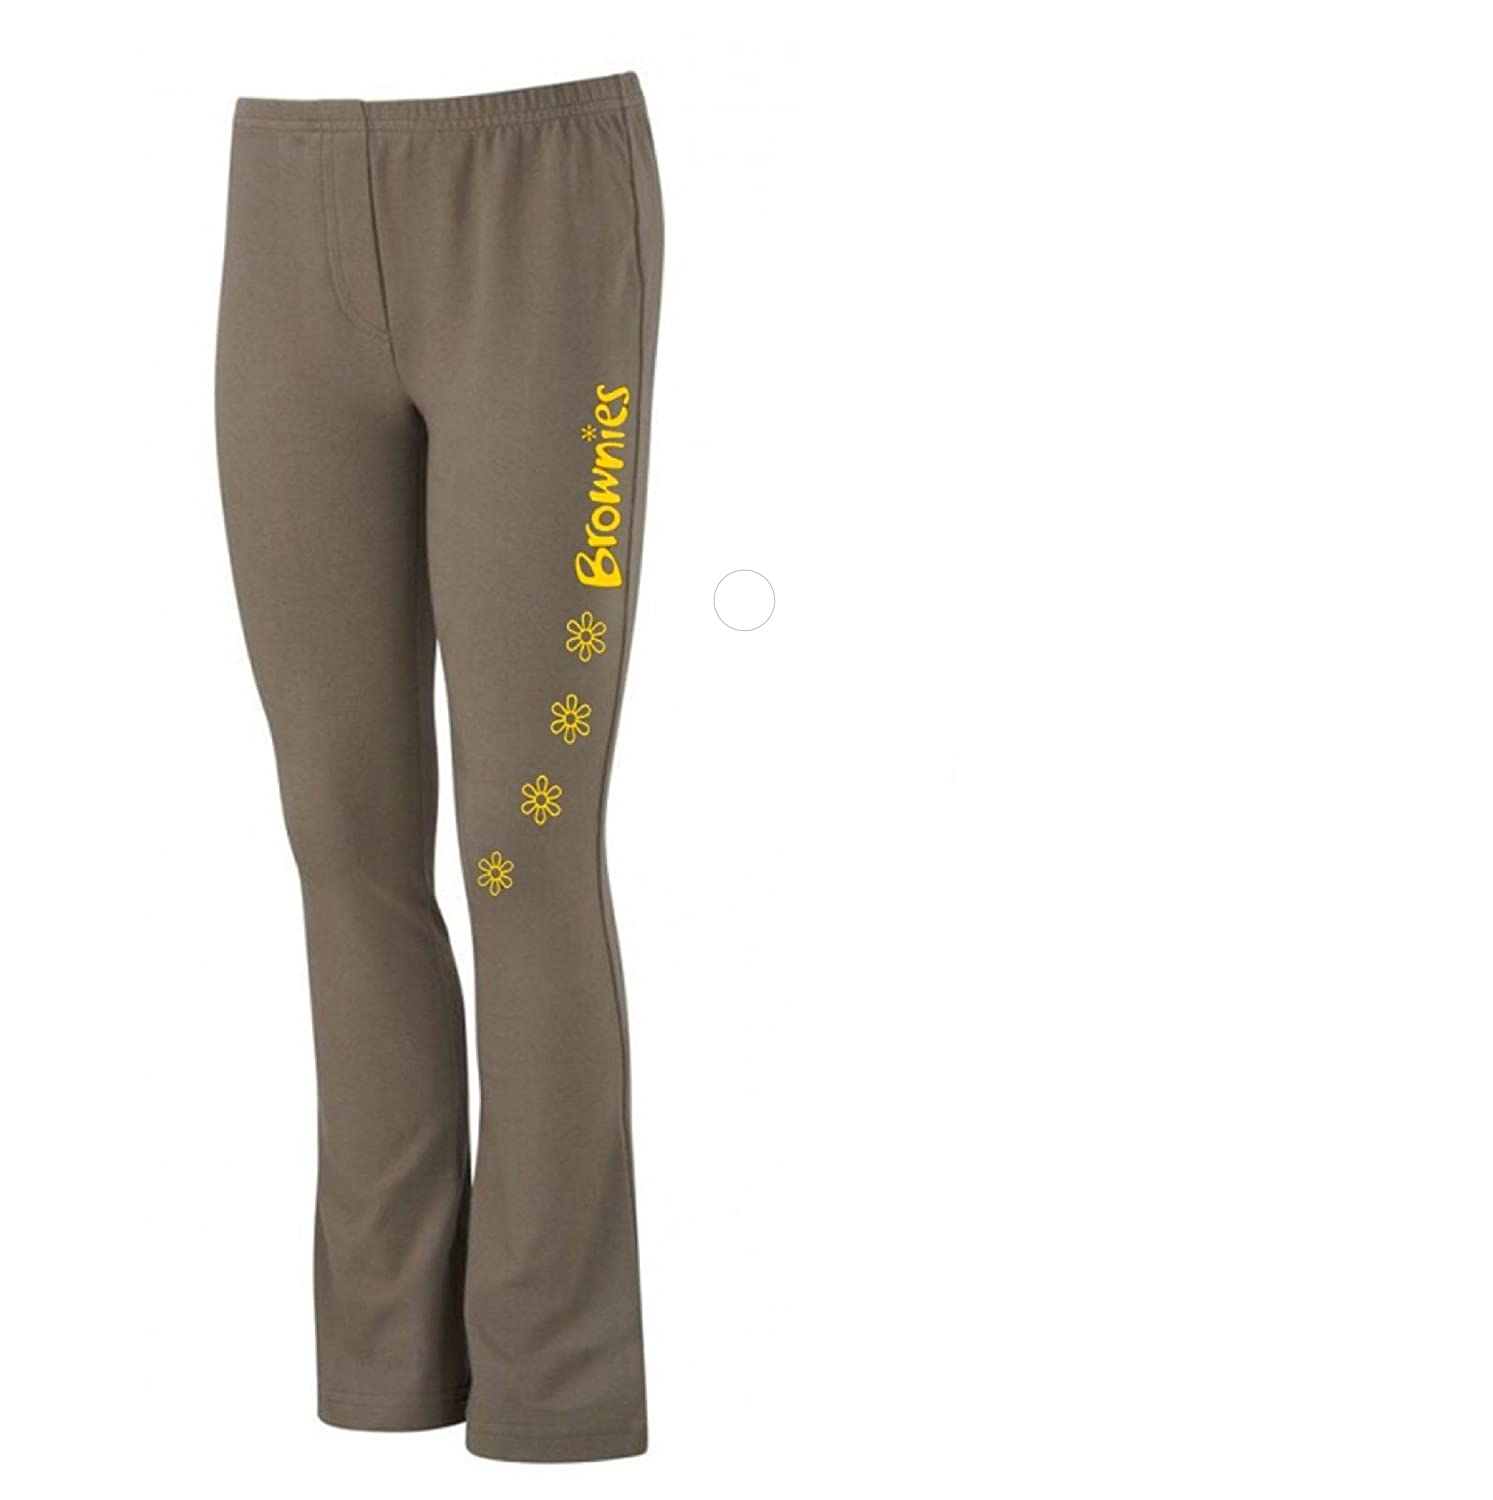 David Luke Official Brownies Girl Guides Uniform Leggings Trousers